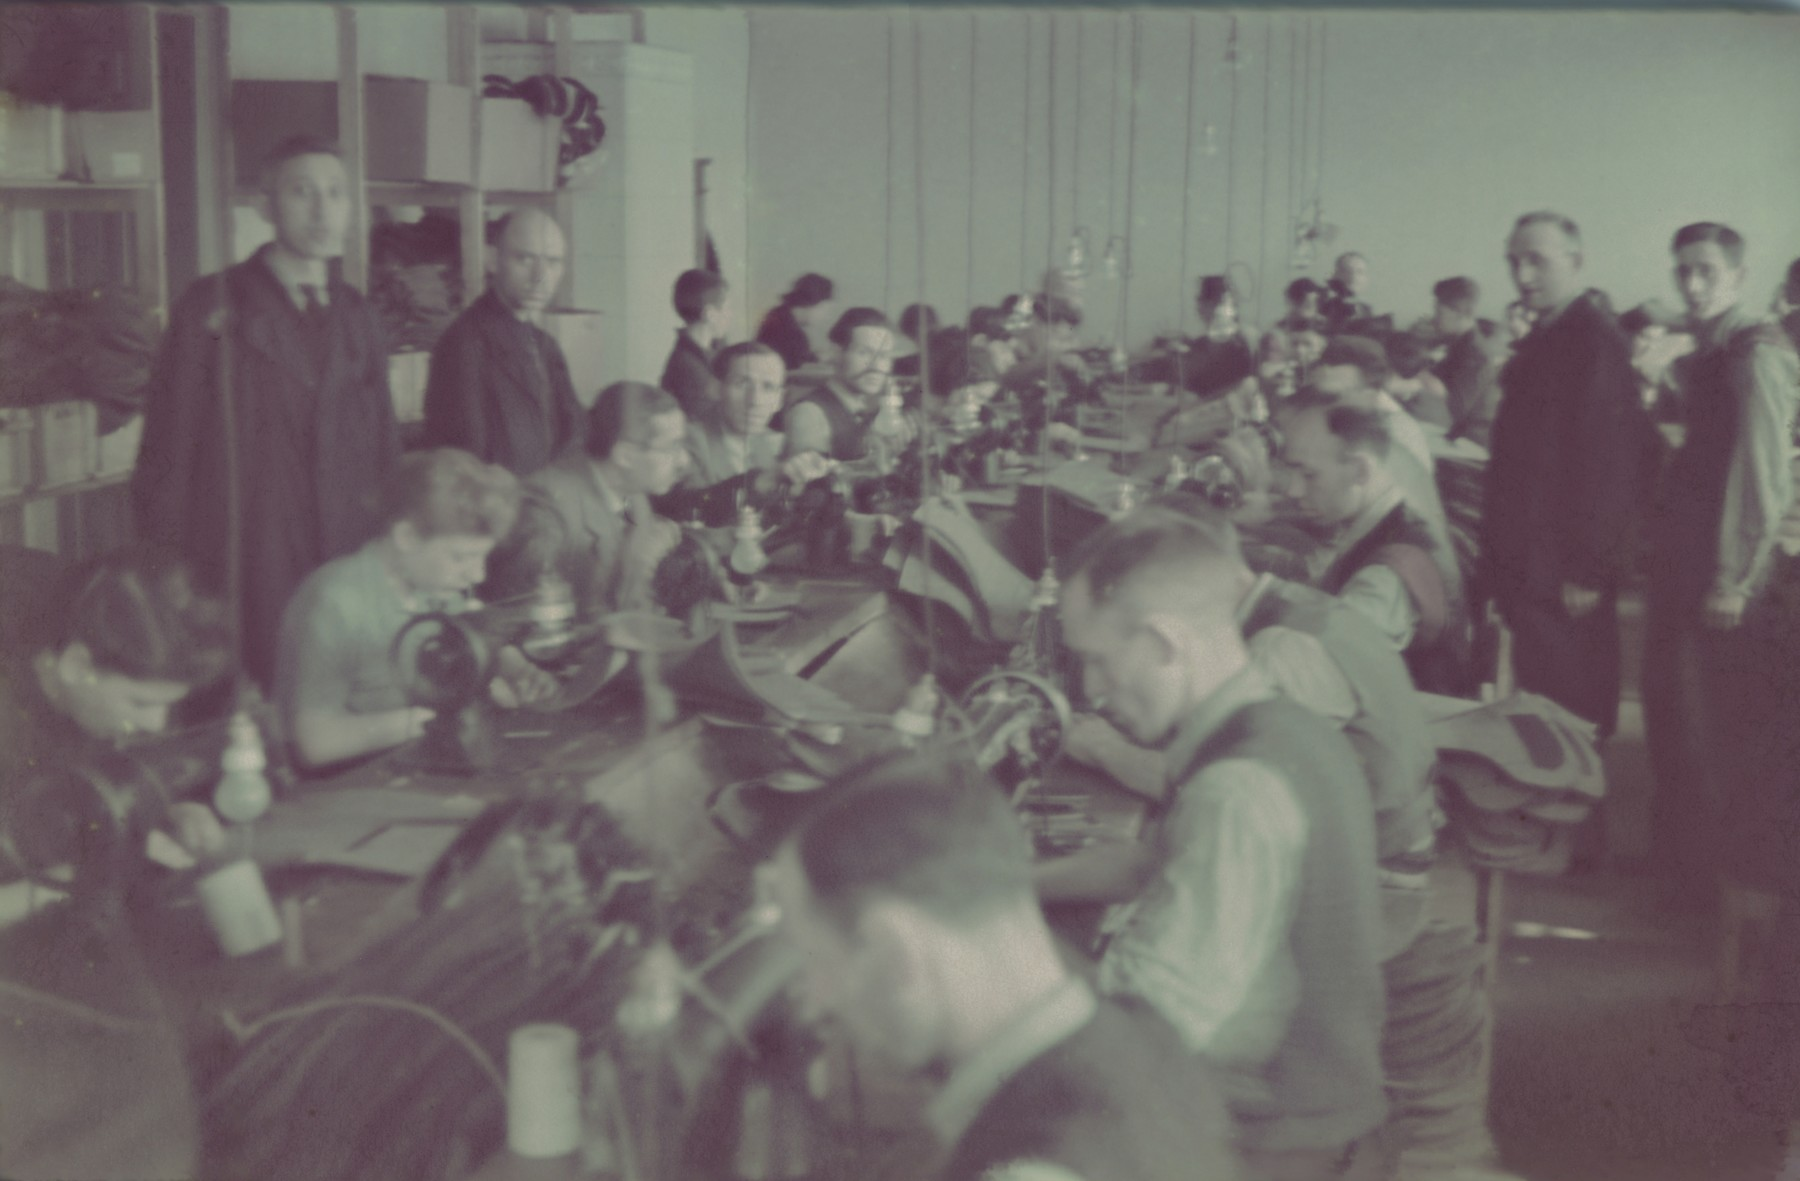 """Workers operate sewing machines in the saddle-making workshop of the Lodz ghetto.  Original German caption: """"Litzmannstadt Getto, Sattlerei"""" (saddlery)."""